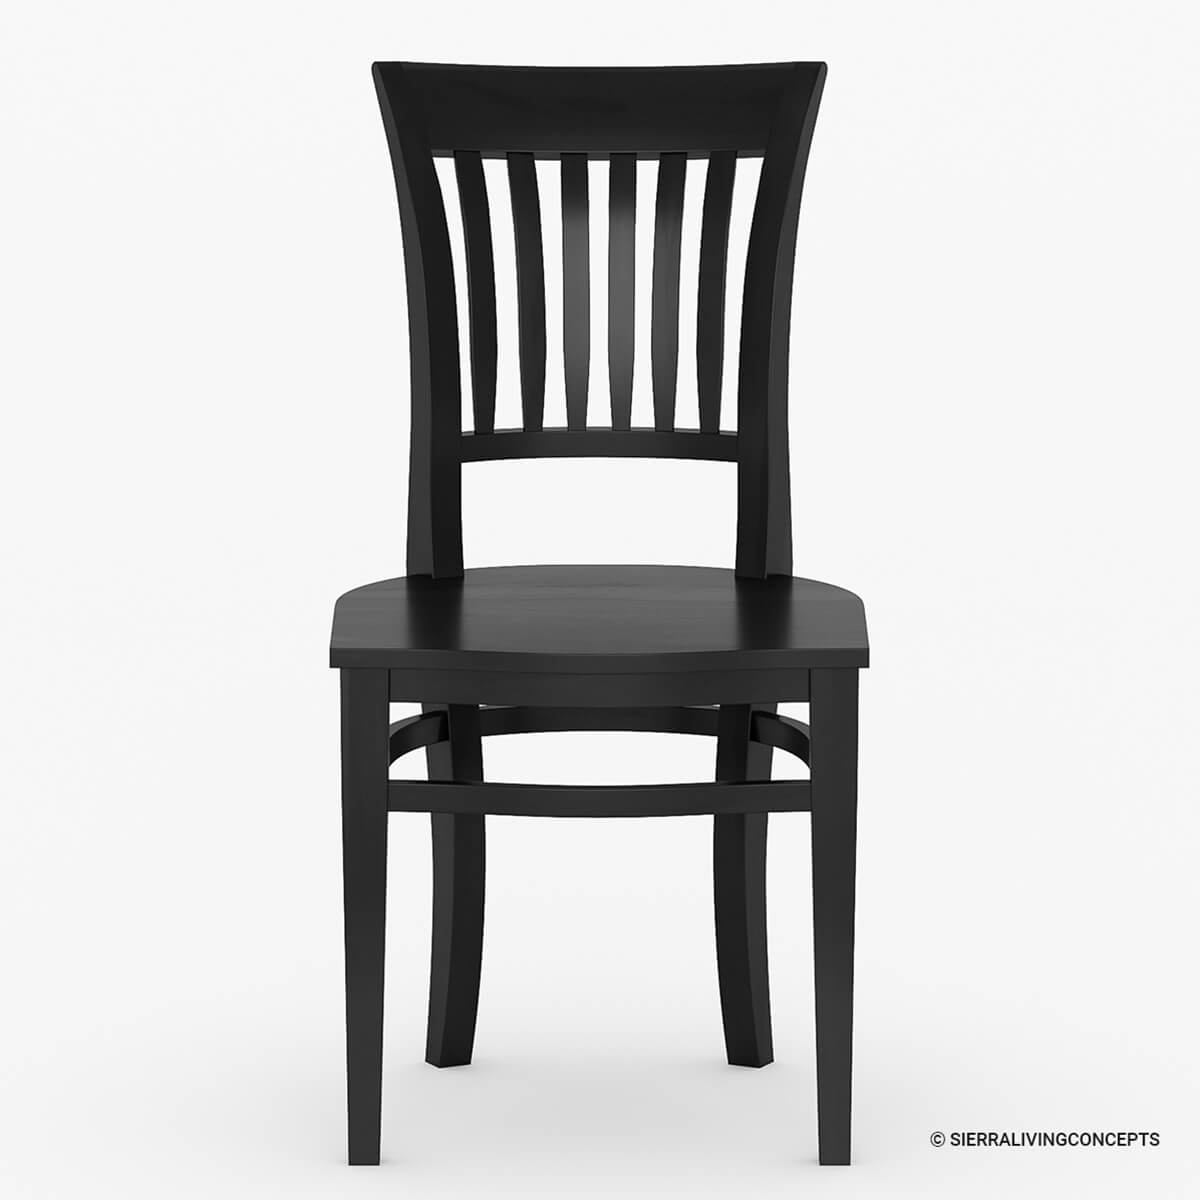 solid wood chairs morris chair cushions sierra nevada kitchen side dining furniture